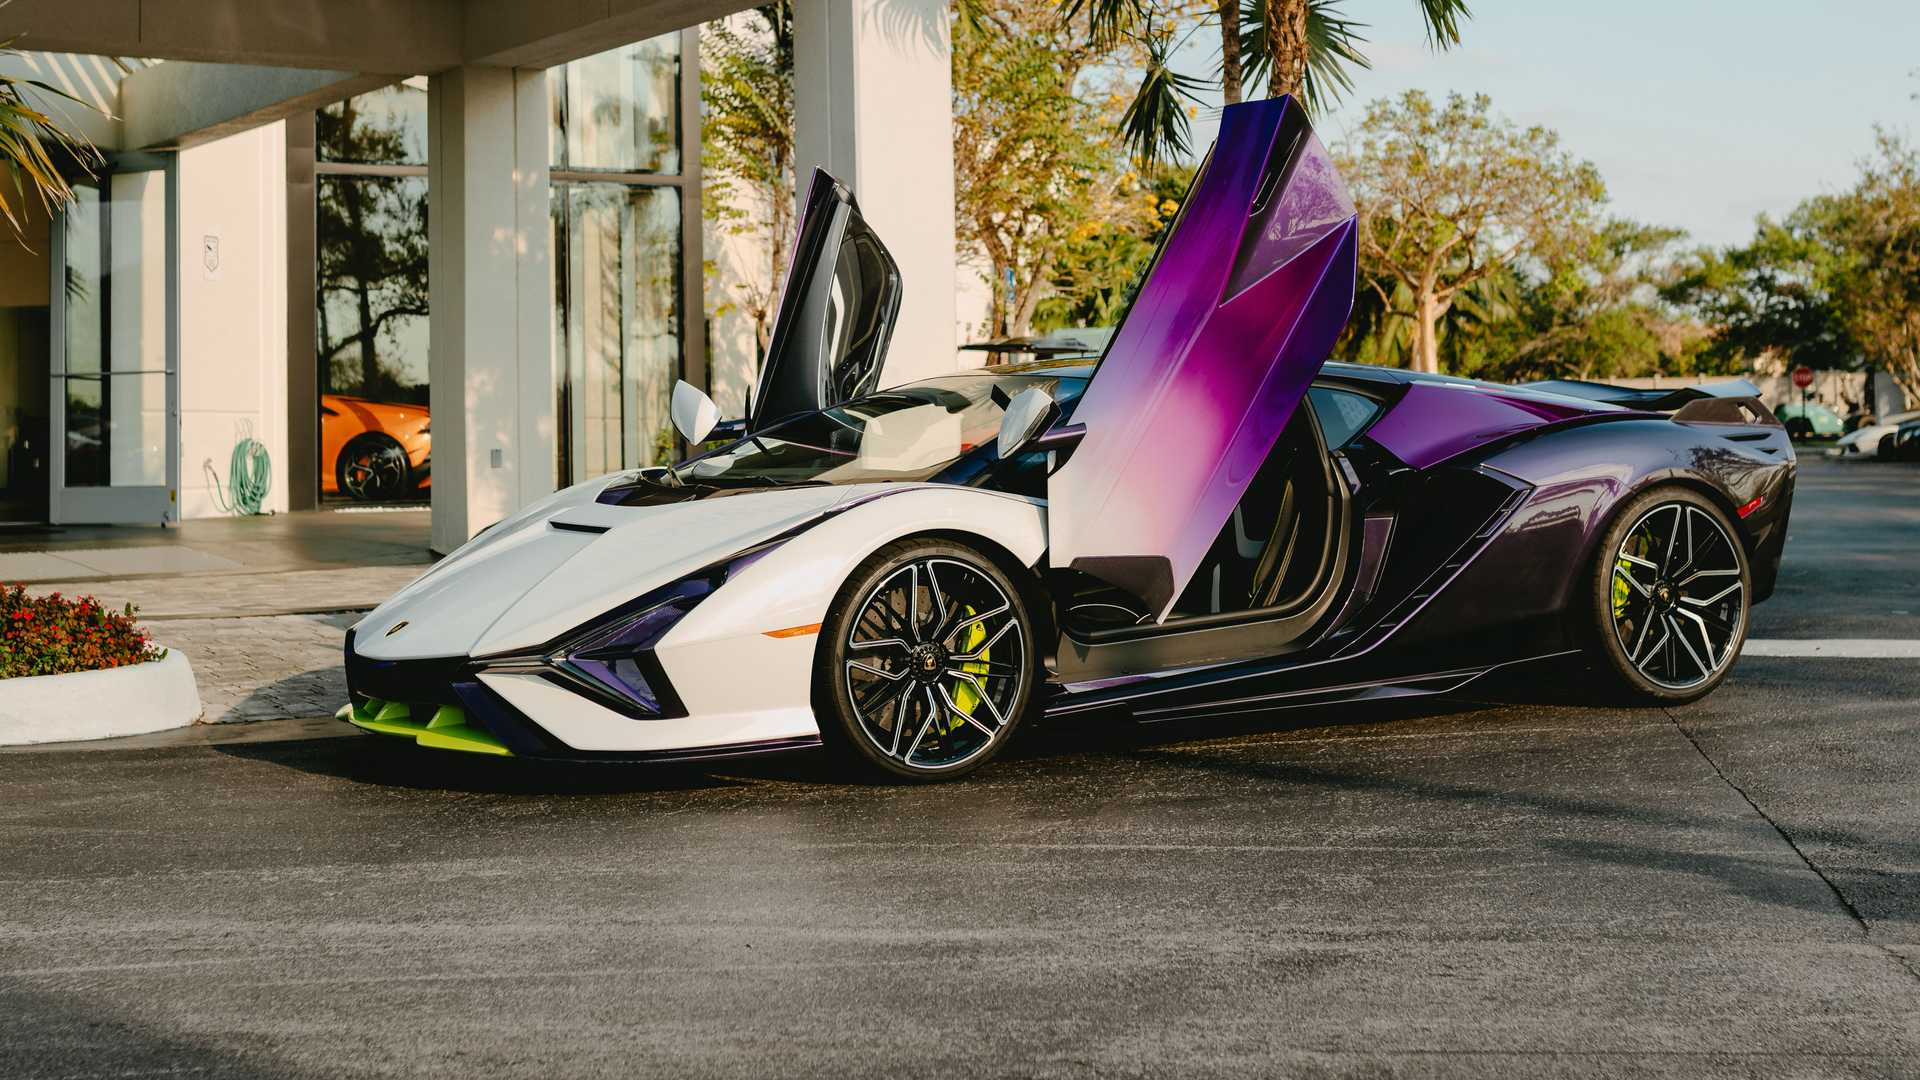 Lamborghini Sian In Purple, Green, And White Side View Low Angle Open Doors Photo By Juan Pablo Saenz